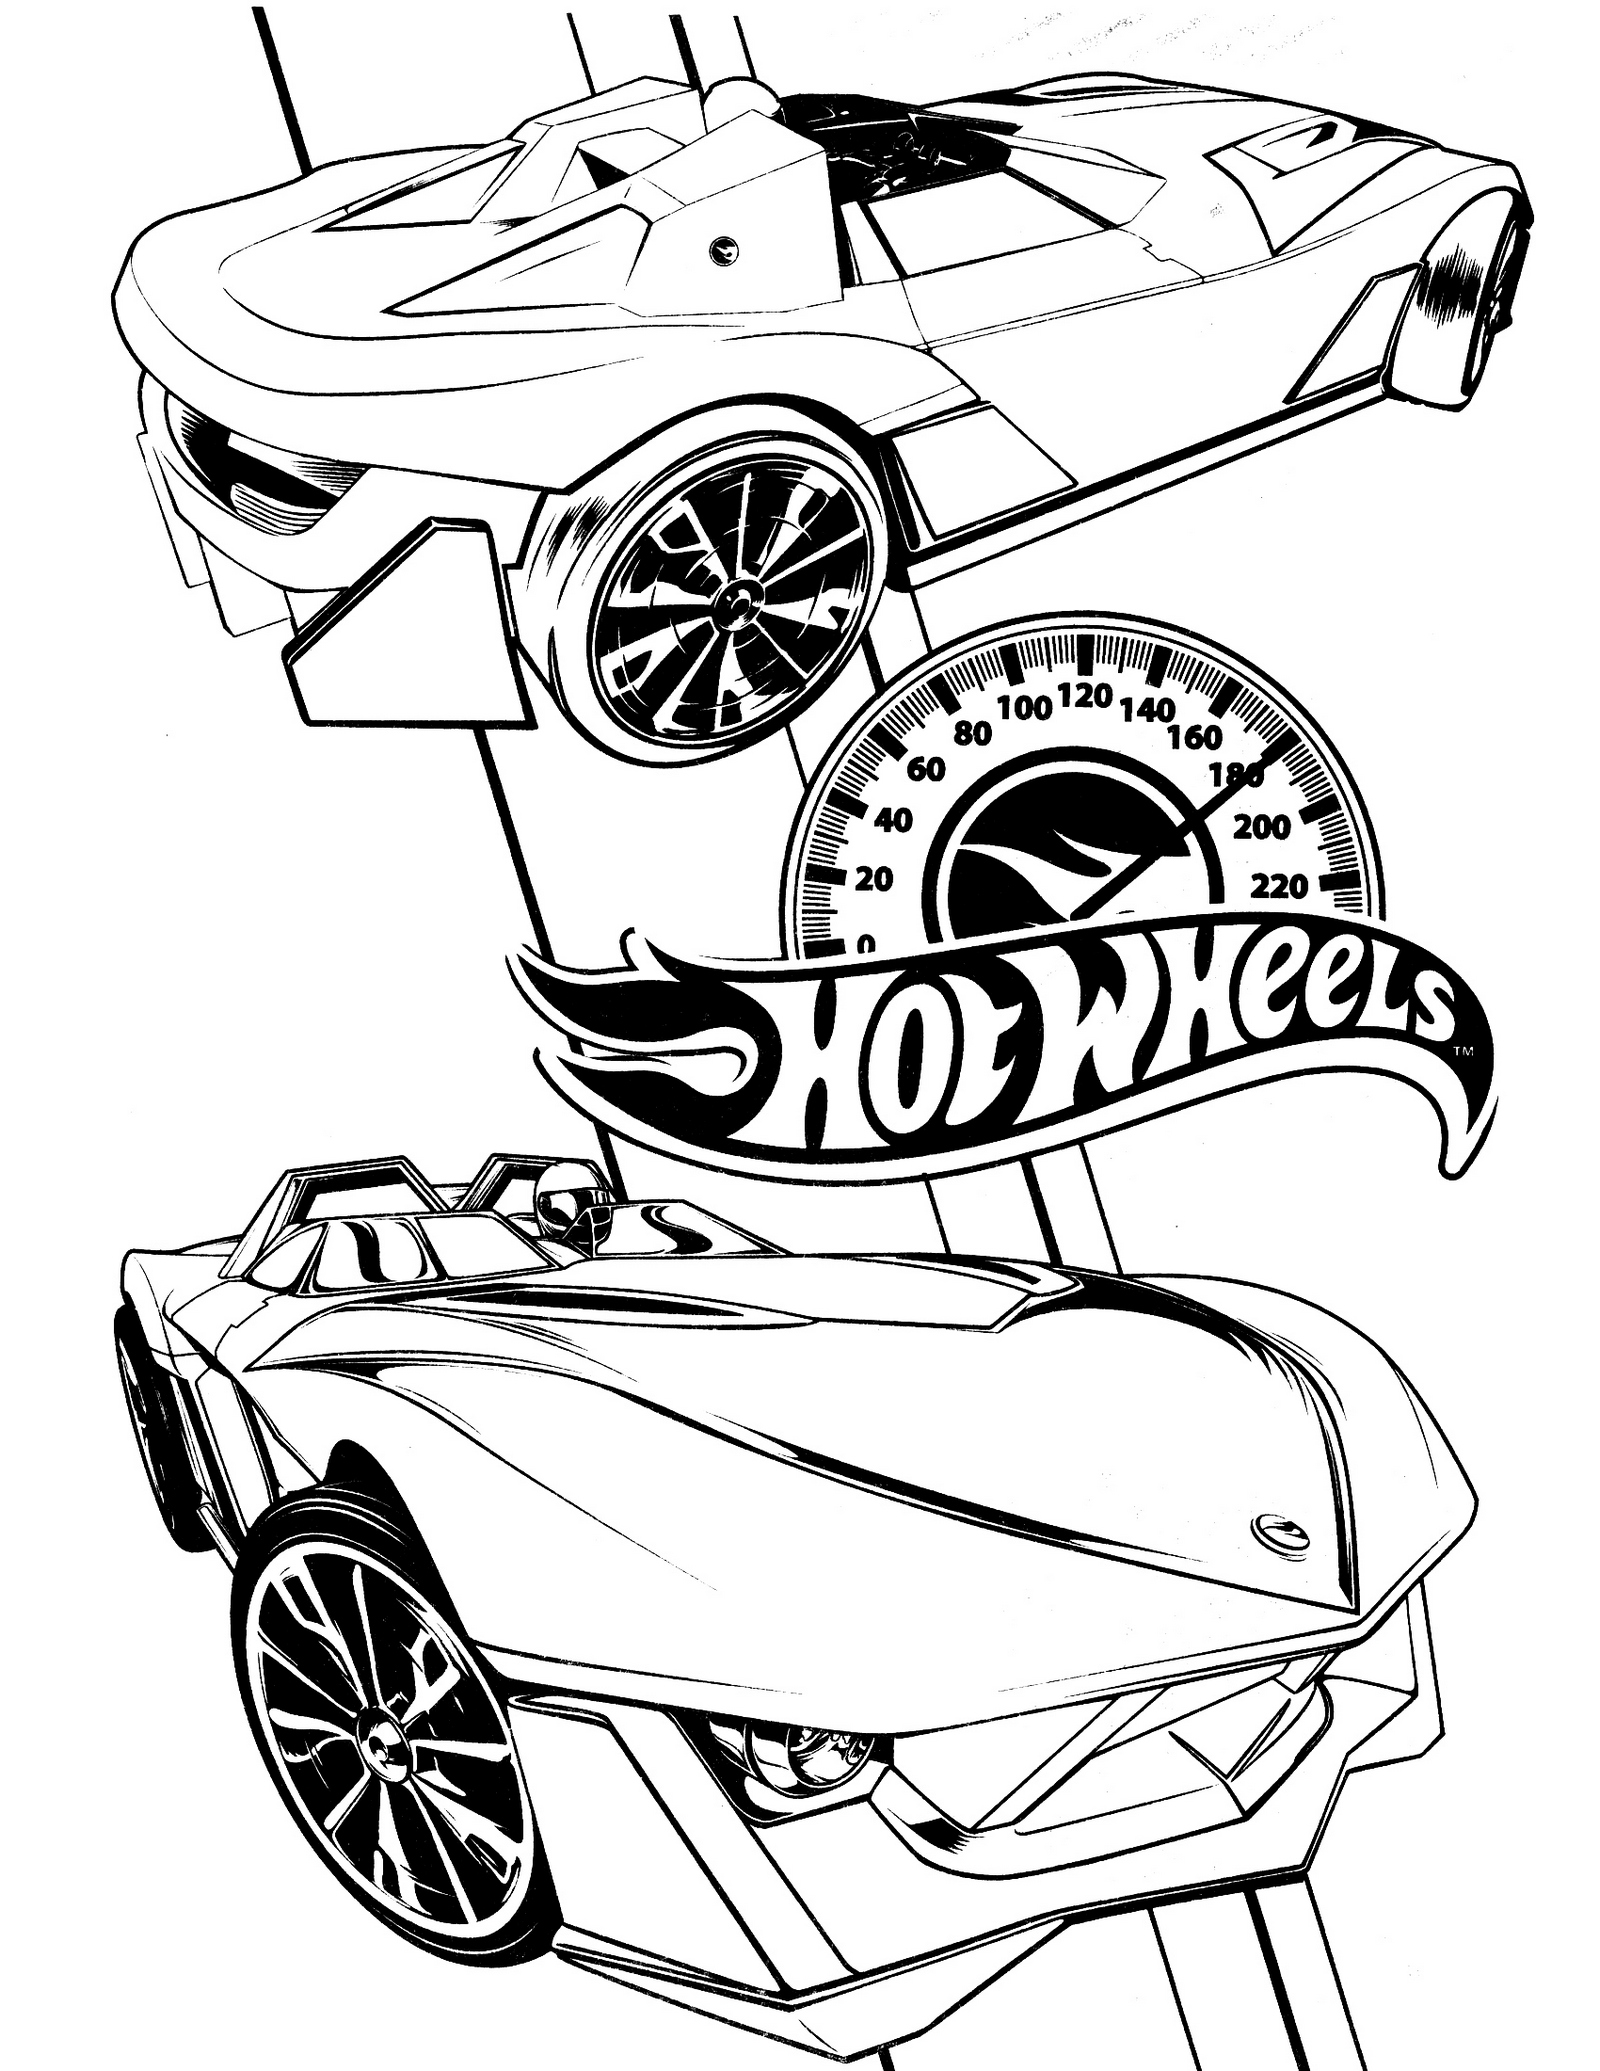 hotwheels coloring pages hot wheels racing league hot wheels coloring pages set 5 pages hotwheels coloring